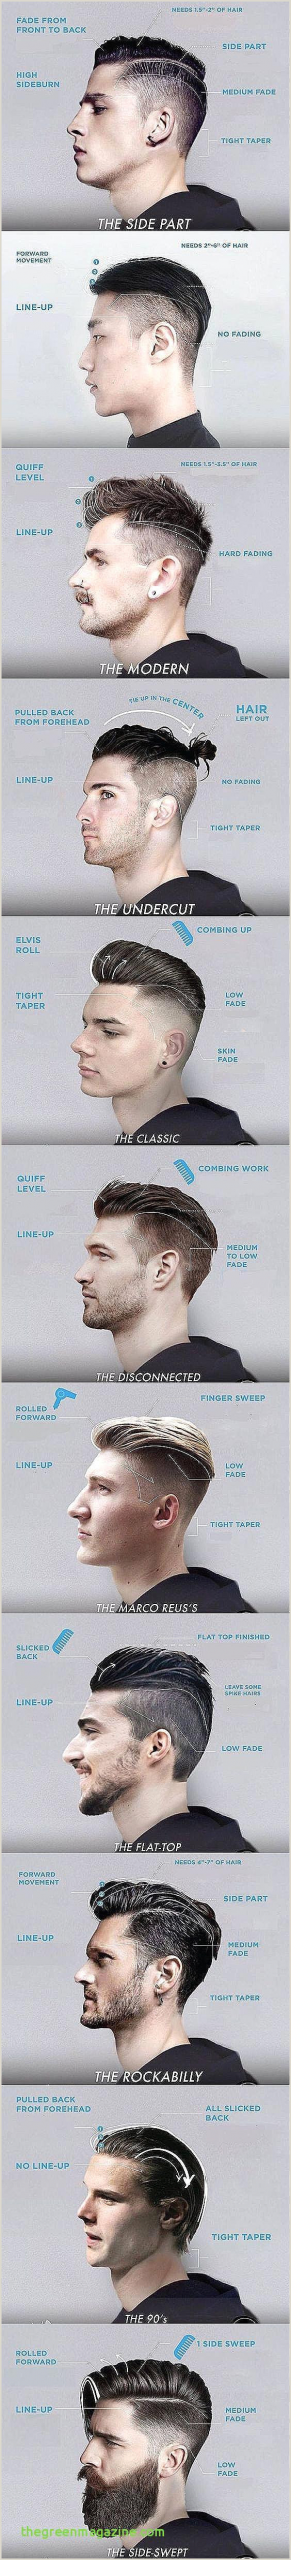 Unique Haircut Templates For Business Cards Front Ans Back Mens Bed Back Hairstyles Awesome Short Haircuts Front And